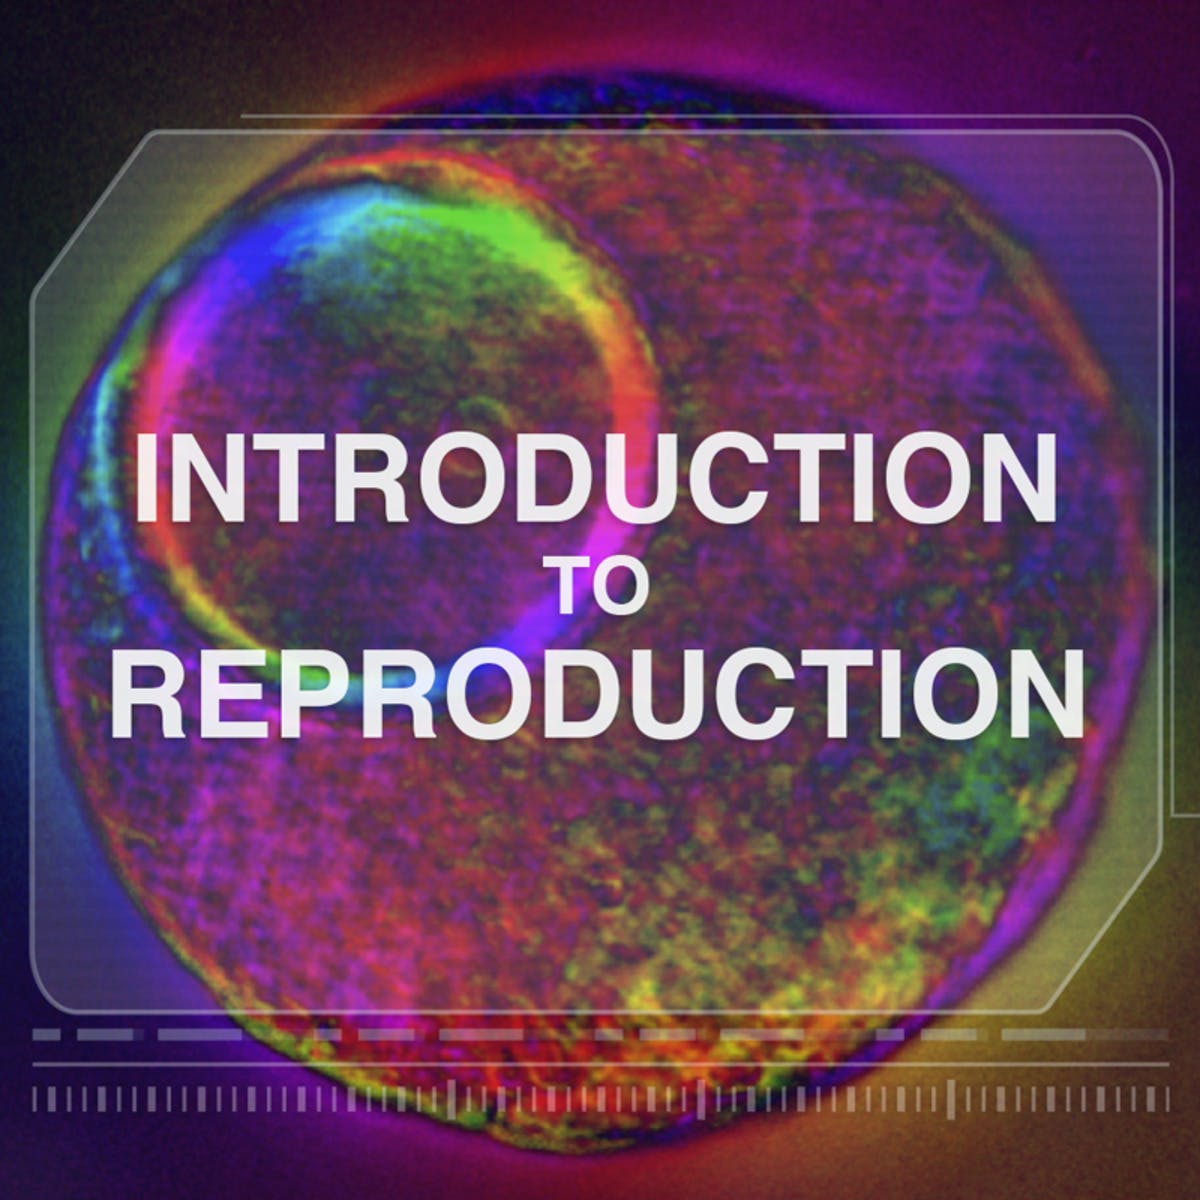 Introduction to Reproduction